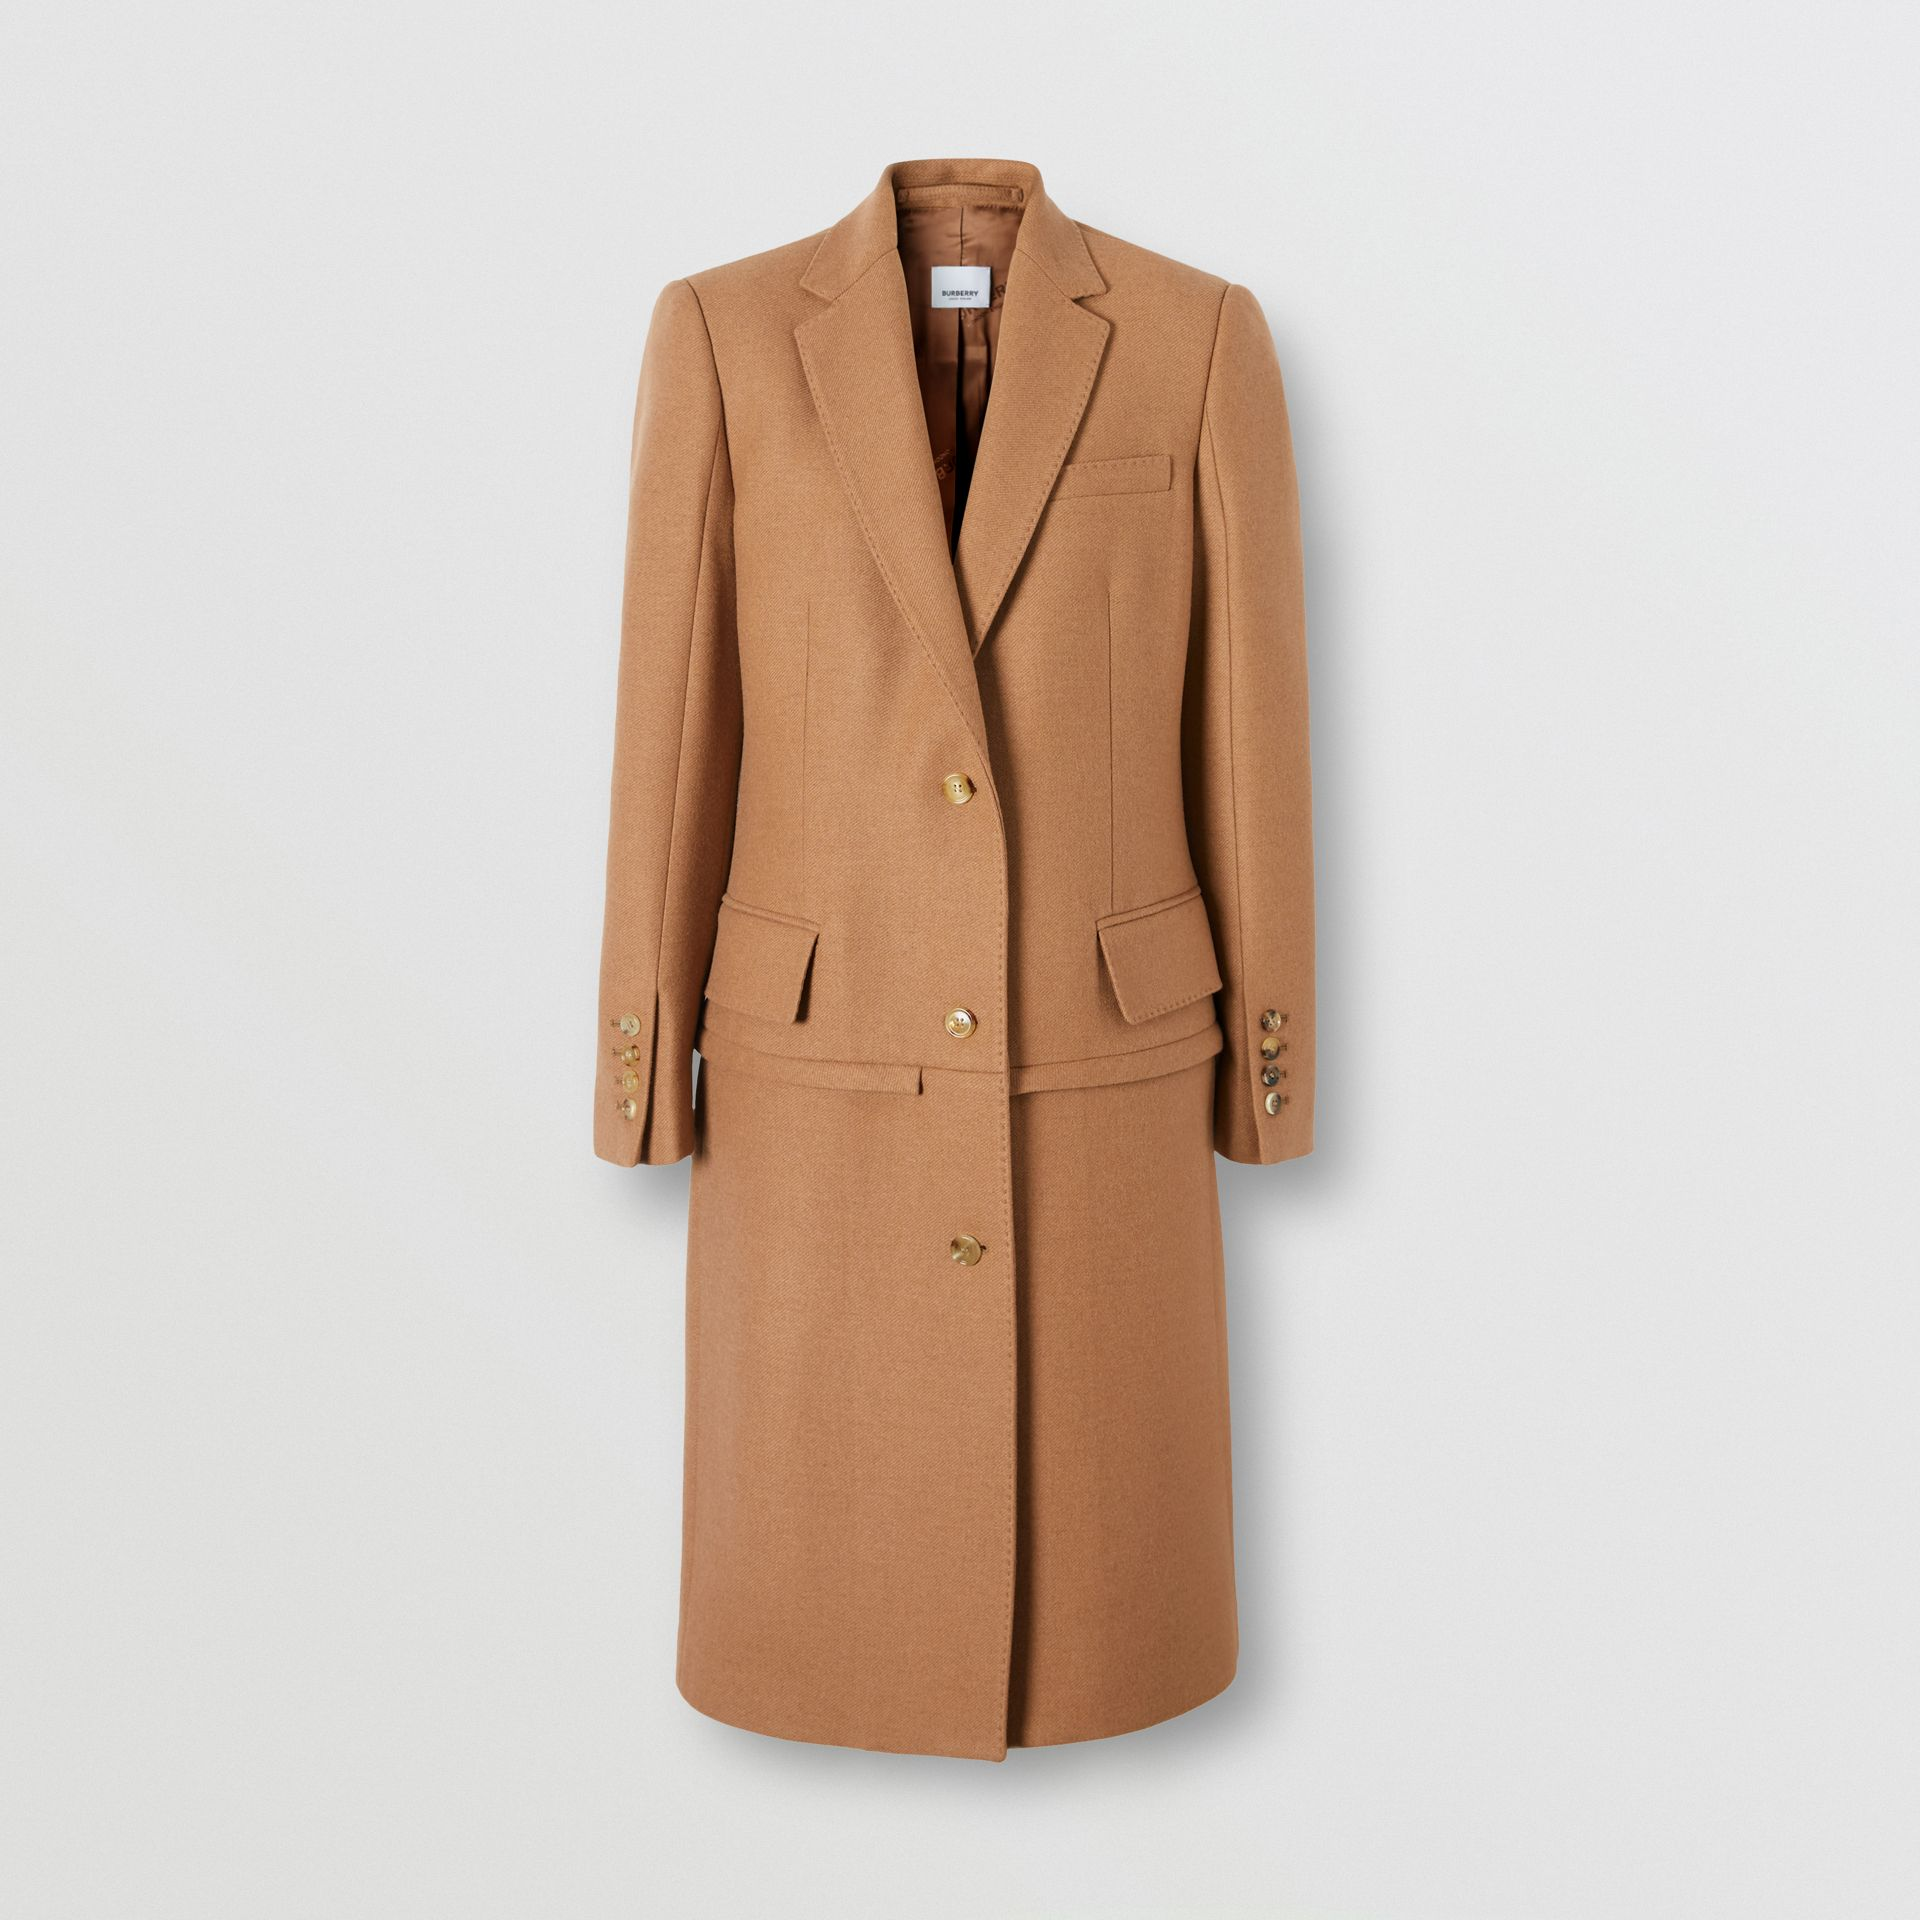 Camel Hair Tailored Coat with Detachable Gilet in Bronze - Women | Burberry - gallery image 9